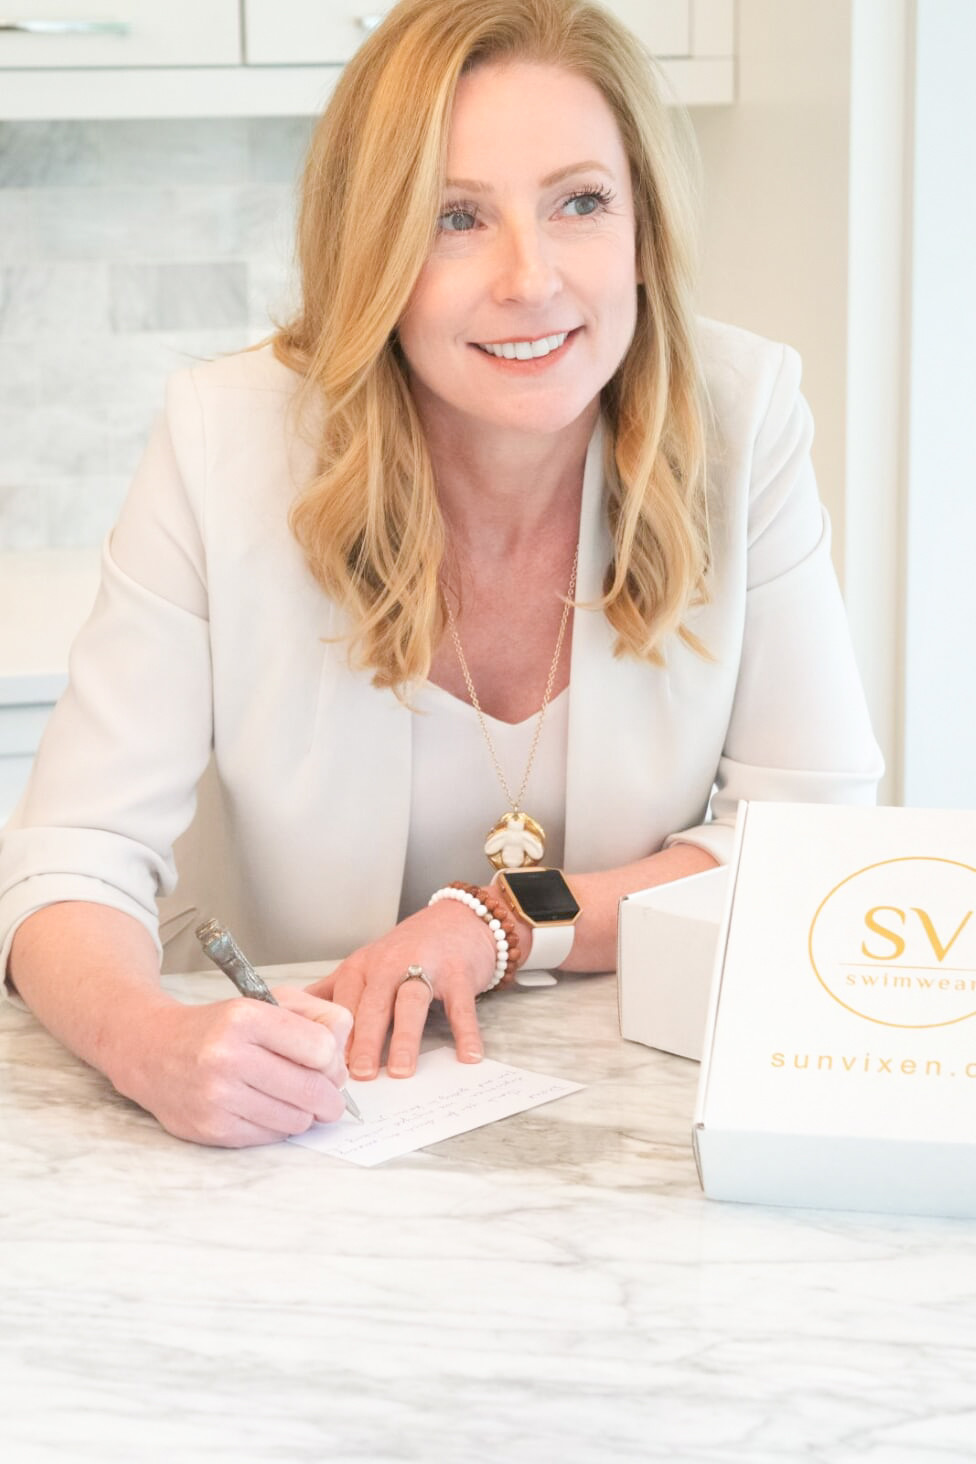 Opal Hurteau of sun vixen swimwear writes a personalized note to her customers who purchase designer swimwear online from sun vixen swimwear in canada